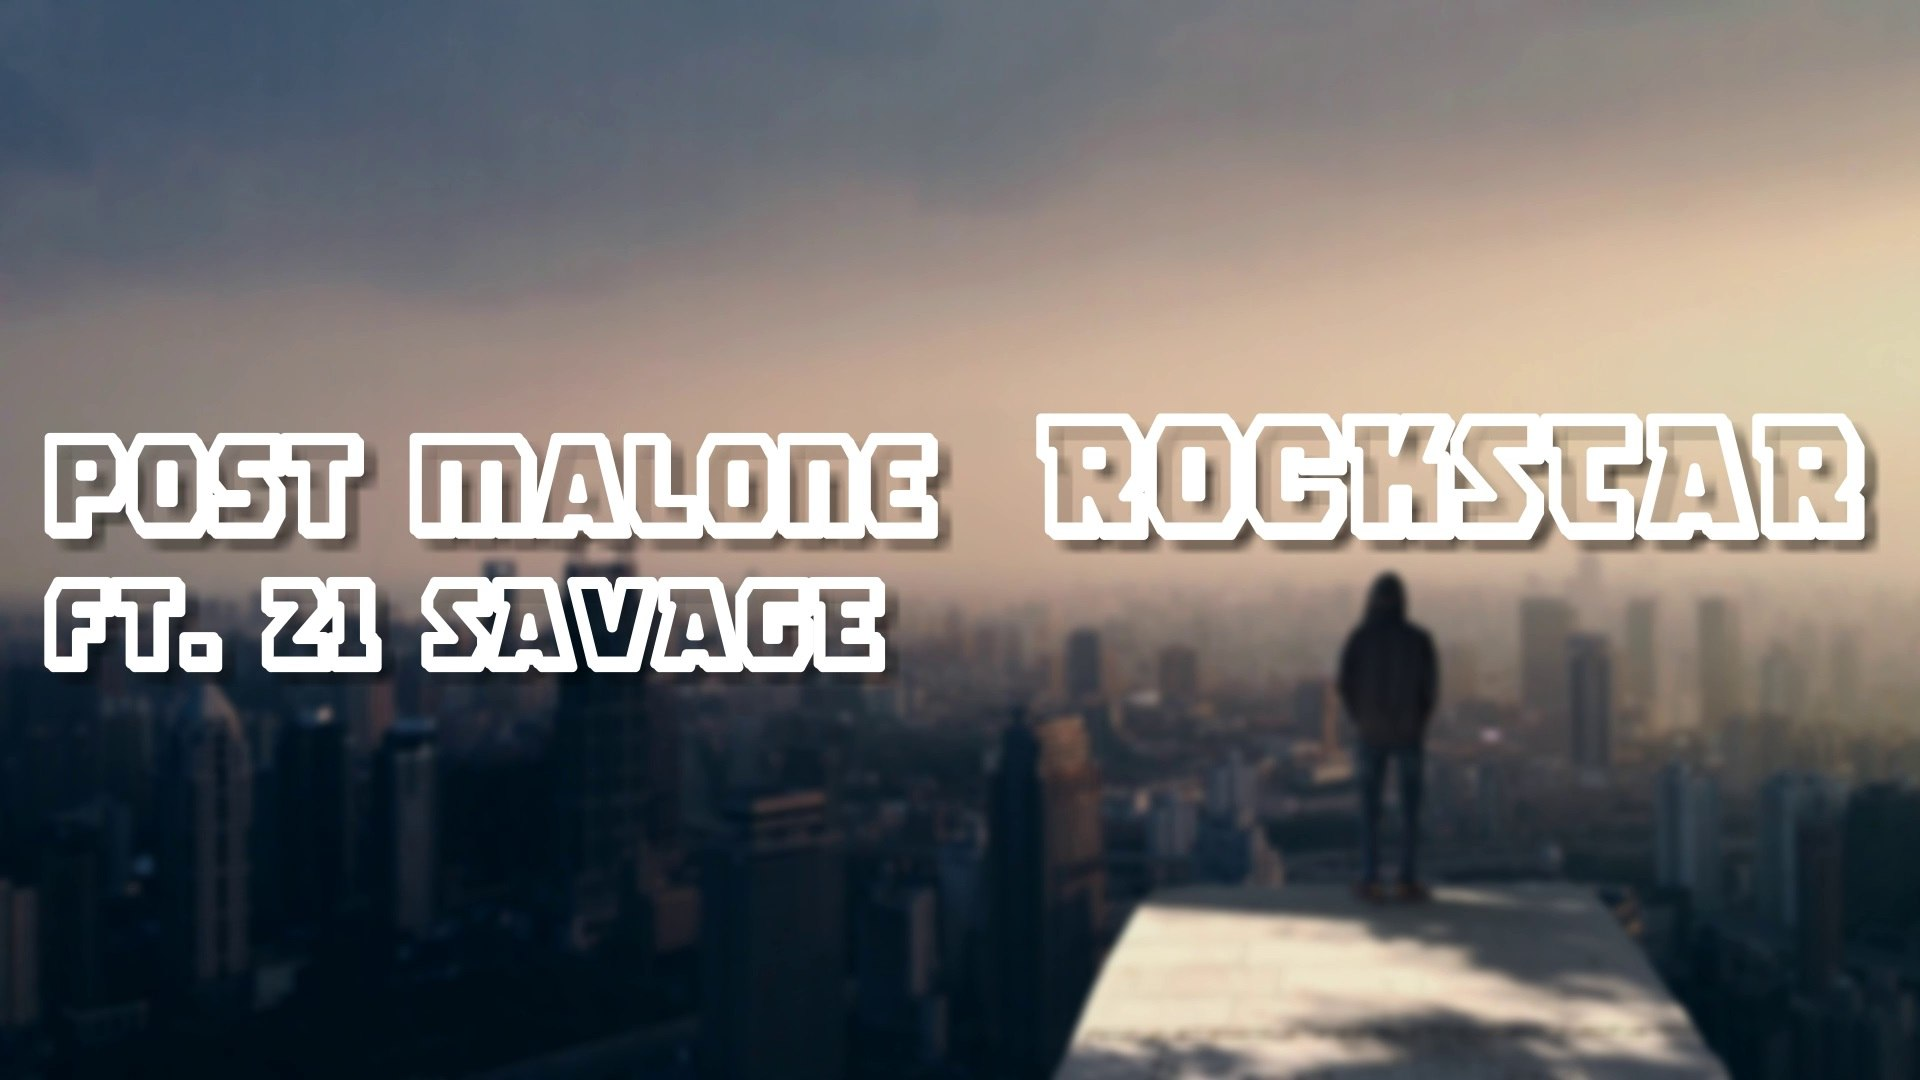 Post Malone - Rockstar ft  21 Savage (Lyrics)